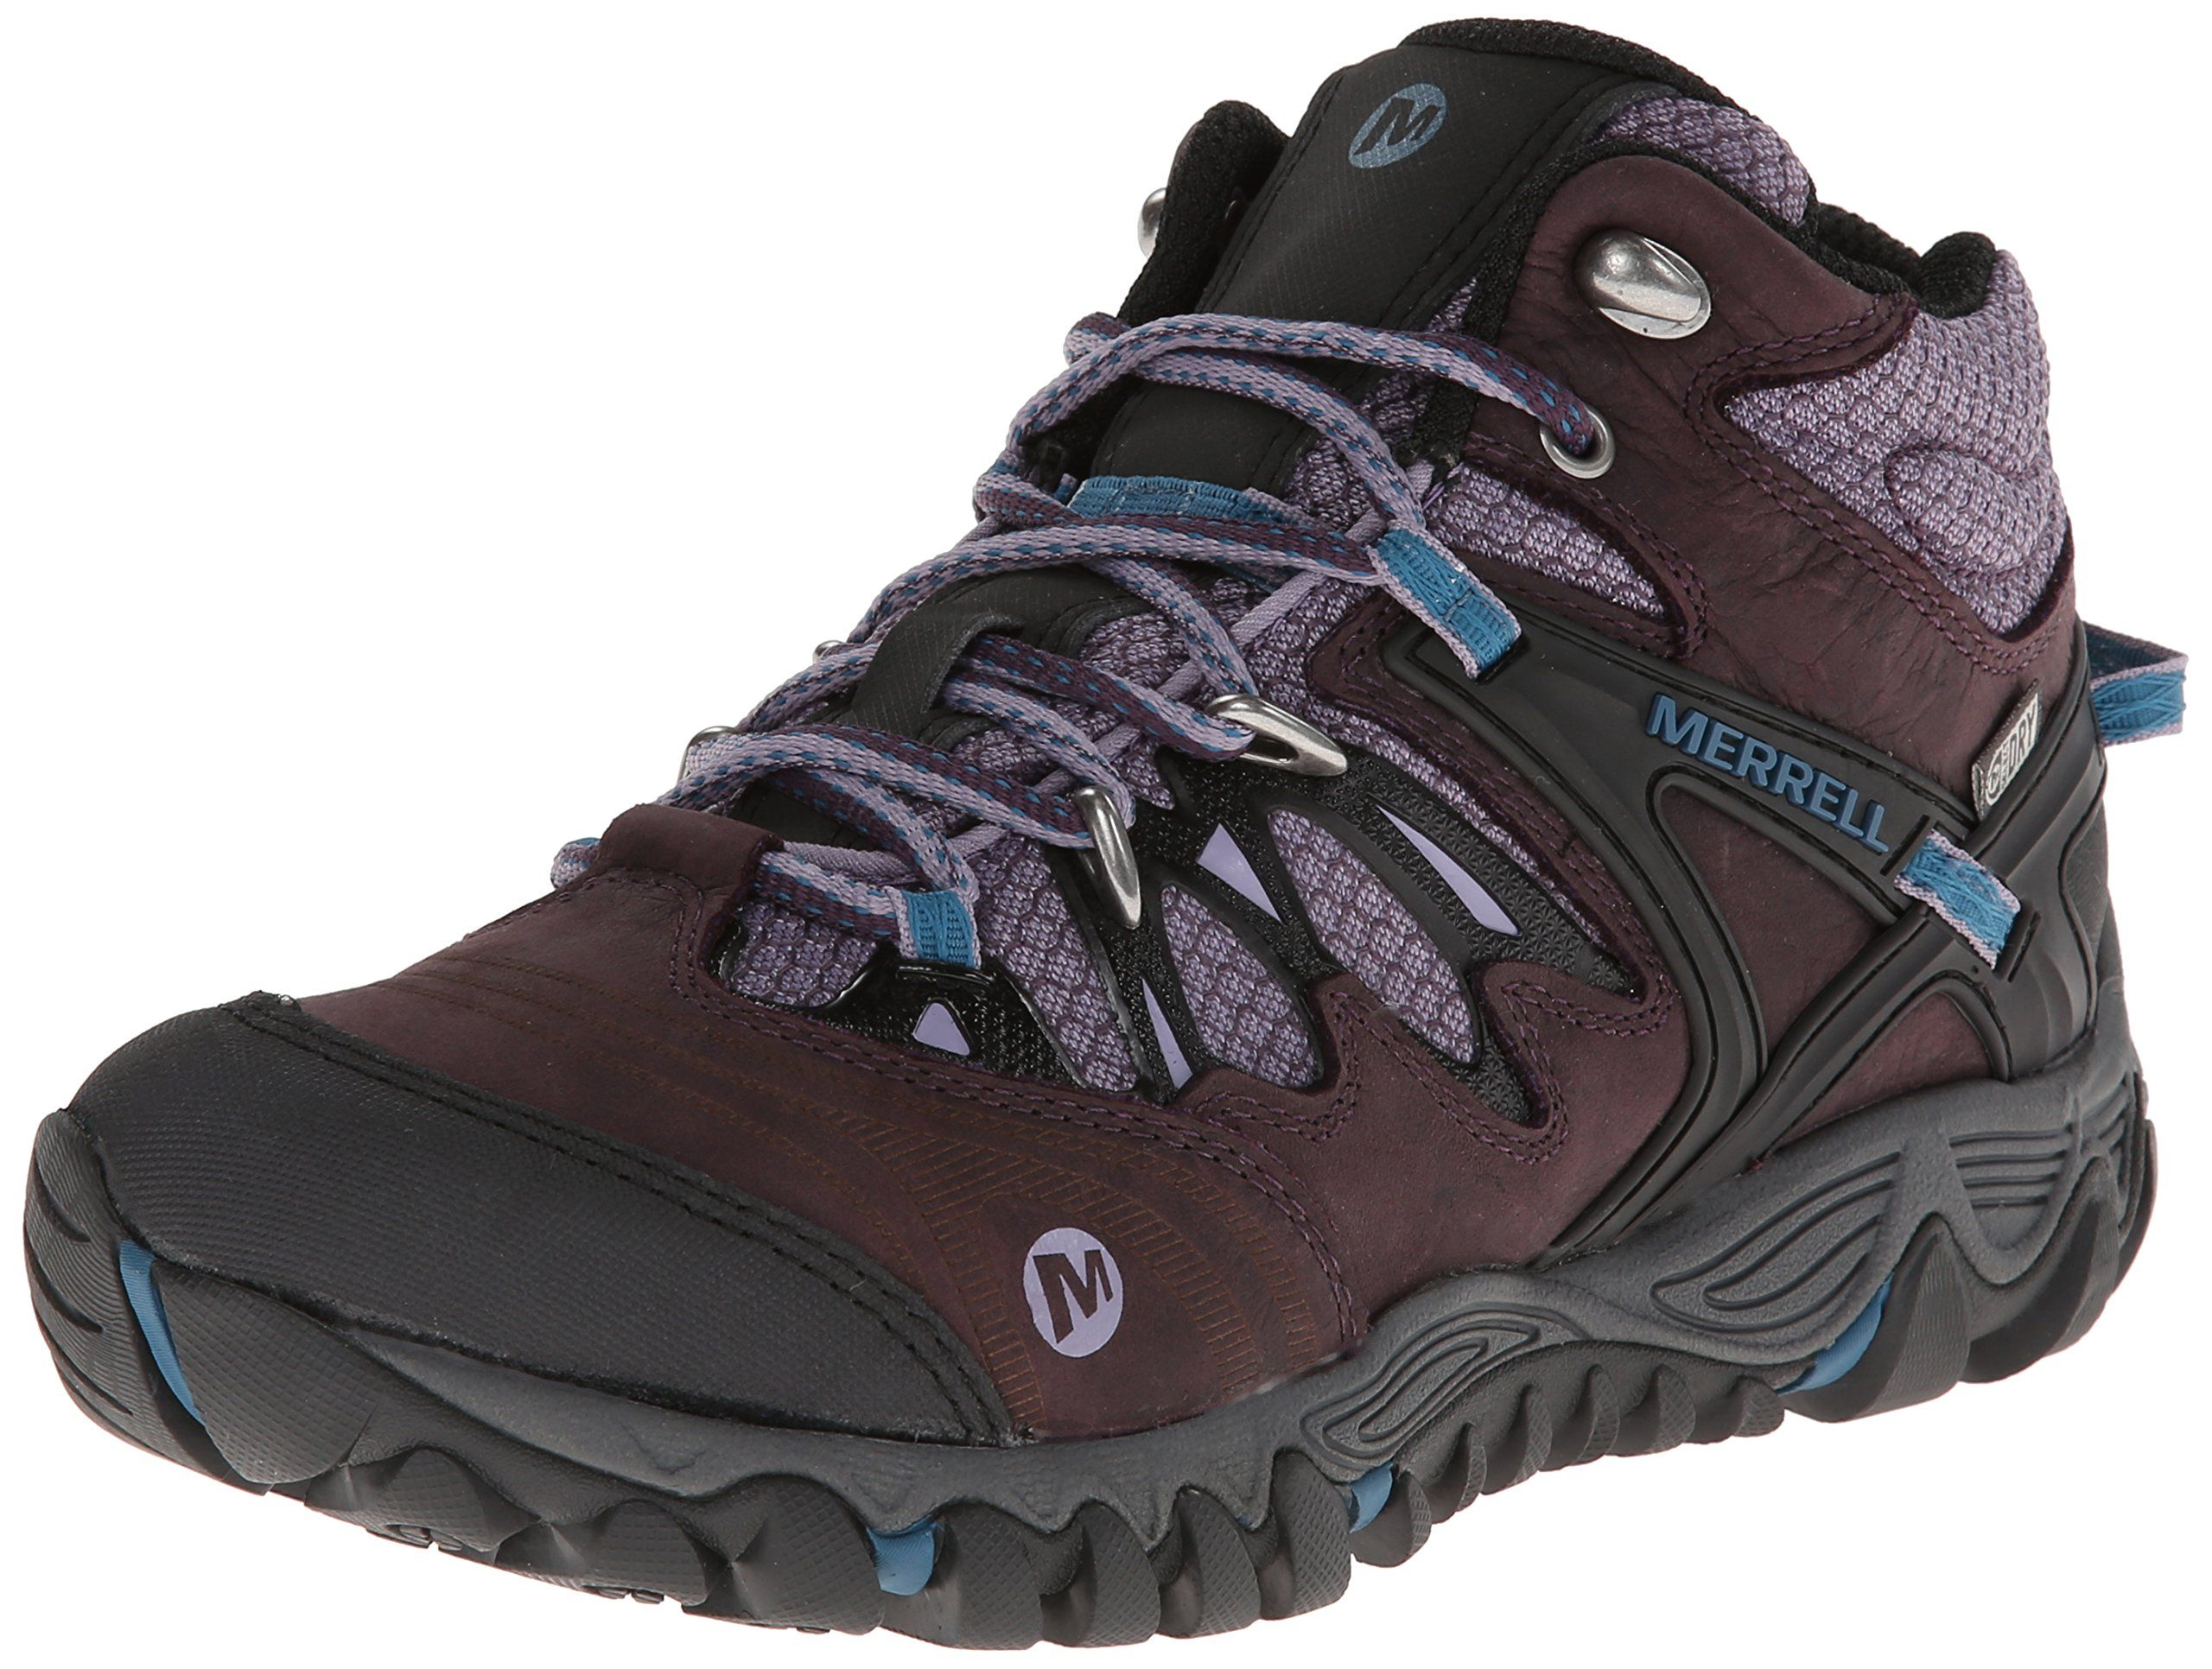 Merrell All Out Blaze Womens Waterproof Hiking Boots Go All Out and unleash  your best hike with this waterproof, responsive, resilient and flexible  shoe, ...